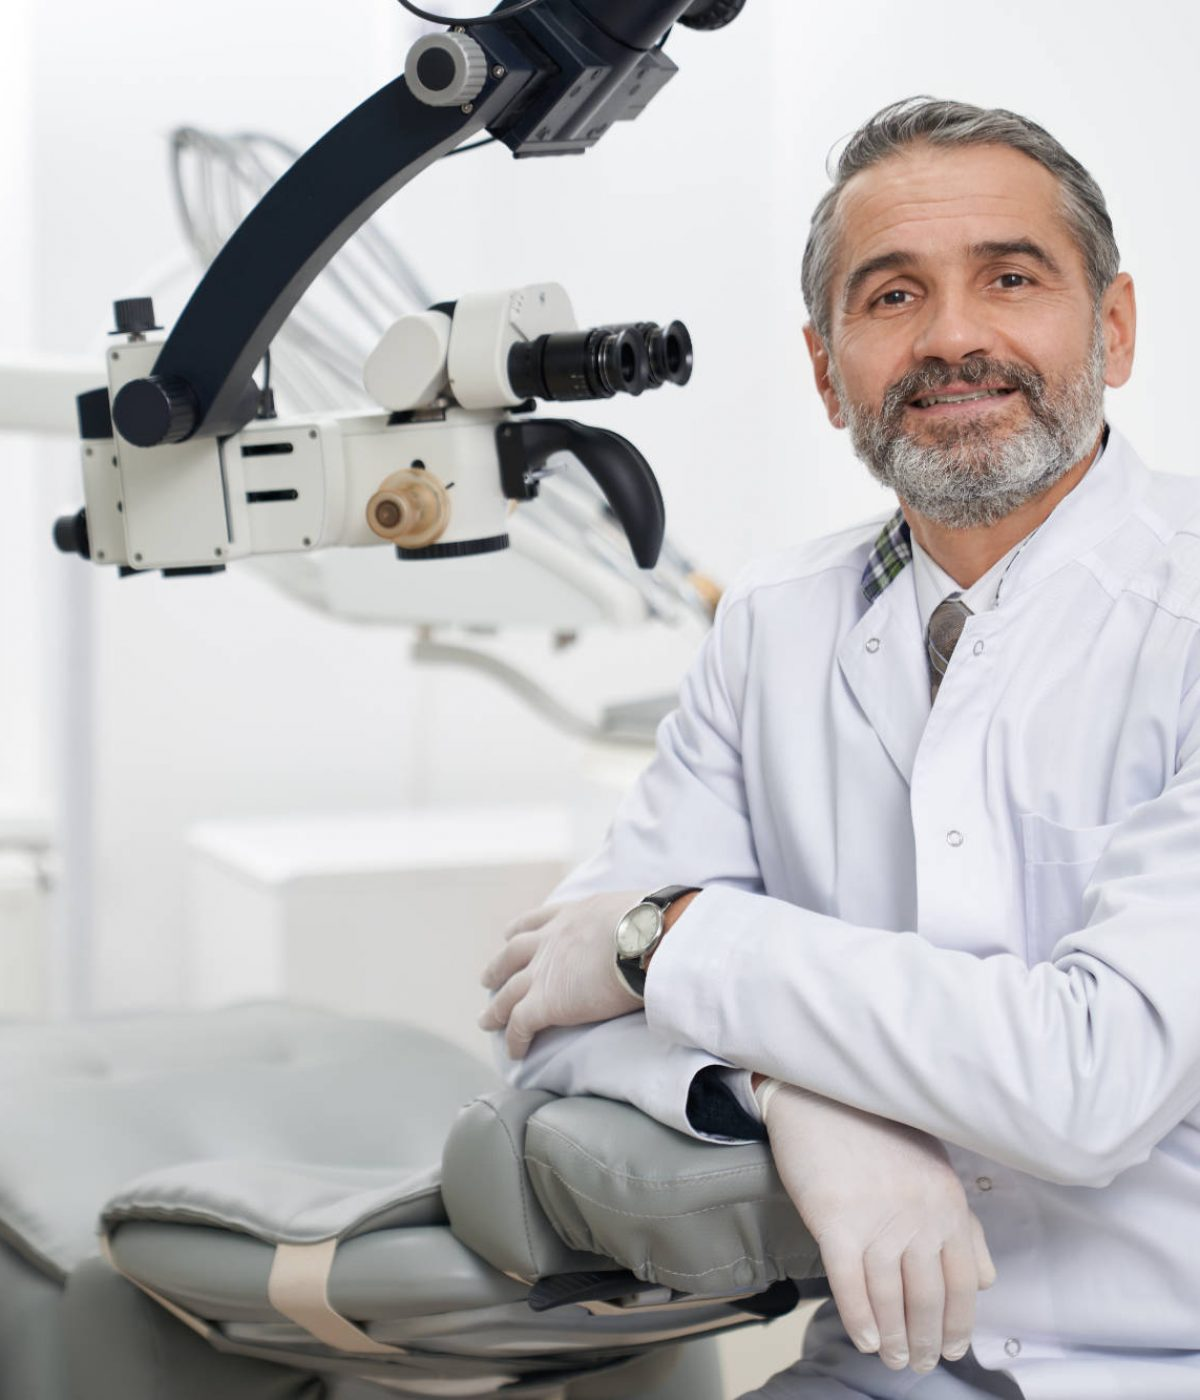 Mature stomatologist posing on workplace, near dental microscope, leaning on dentist chair. Handsome, bearded stomatologist wearing in white medical coat. Man looking at camera and smiling.